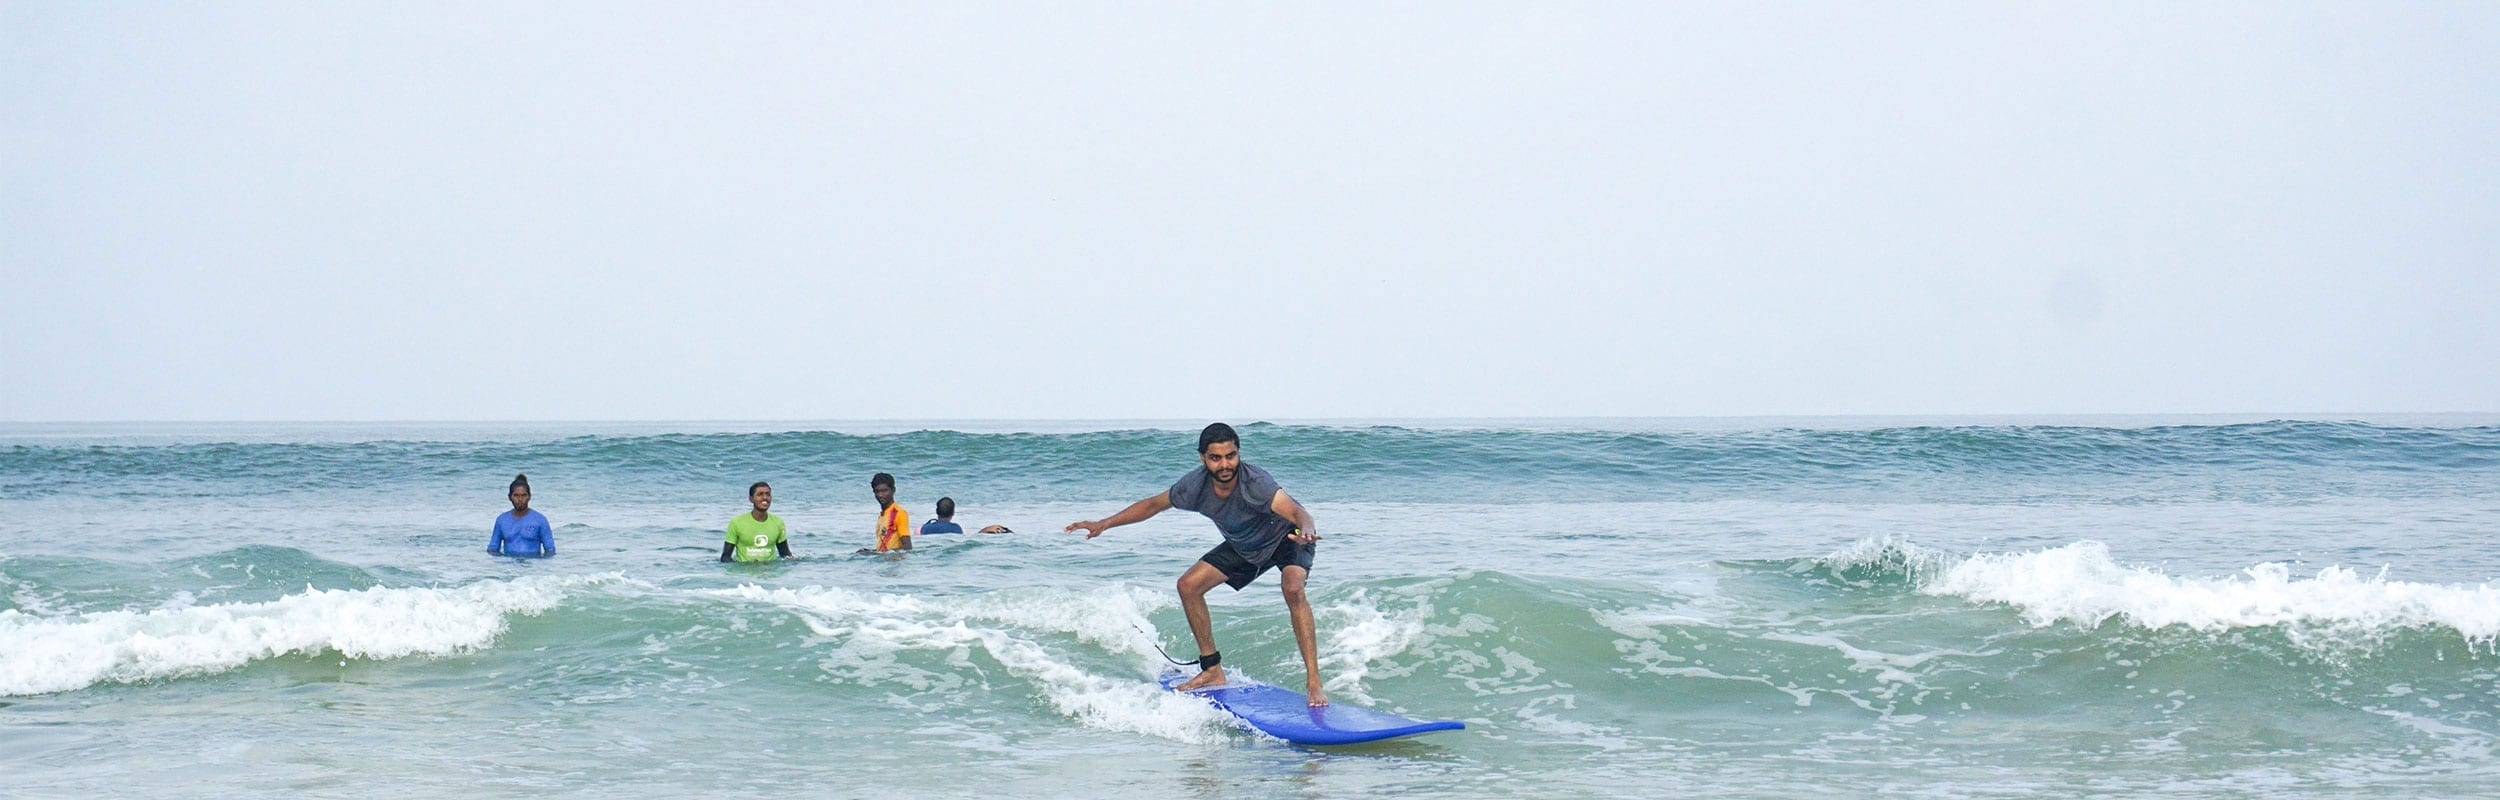 Surfing for Beginners - Mantra Surf Club - 3 days course